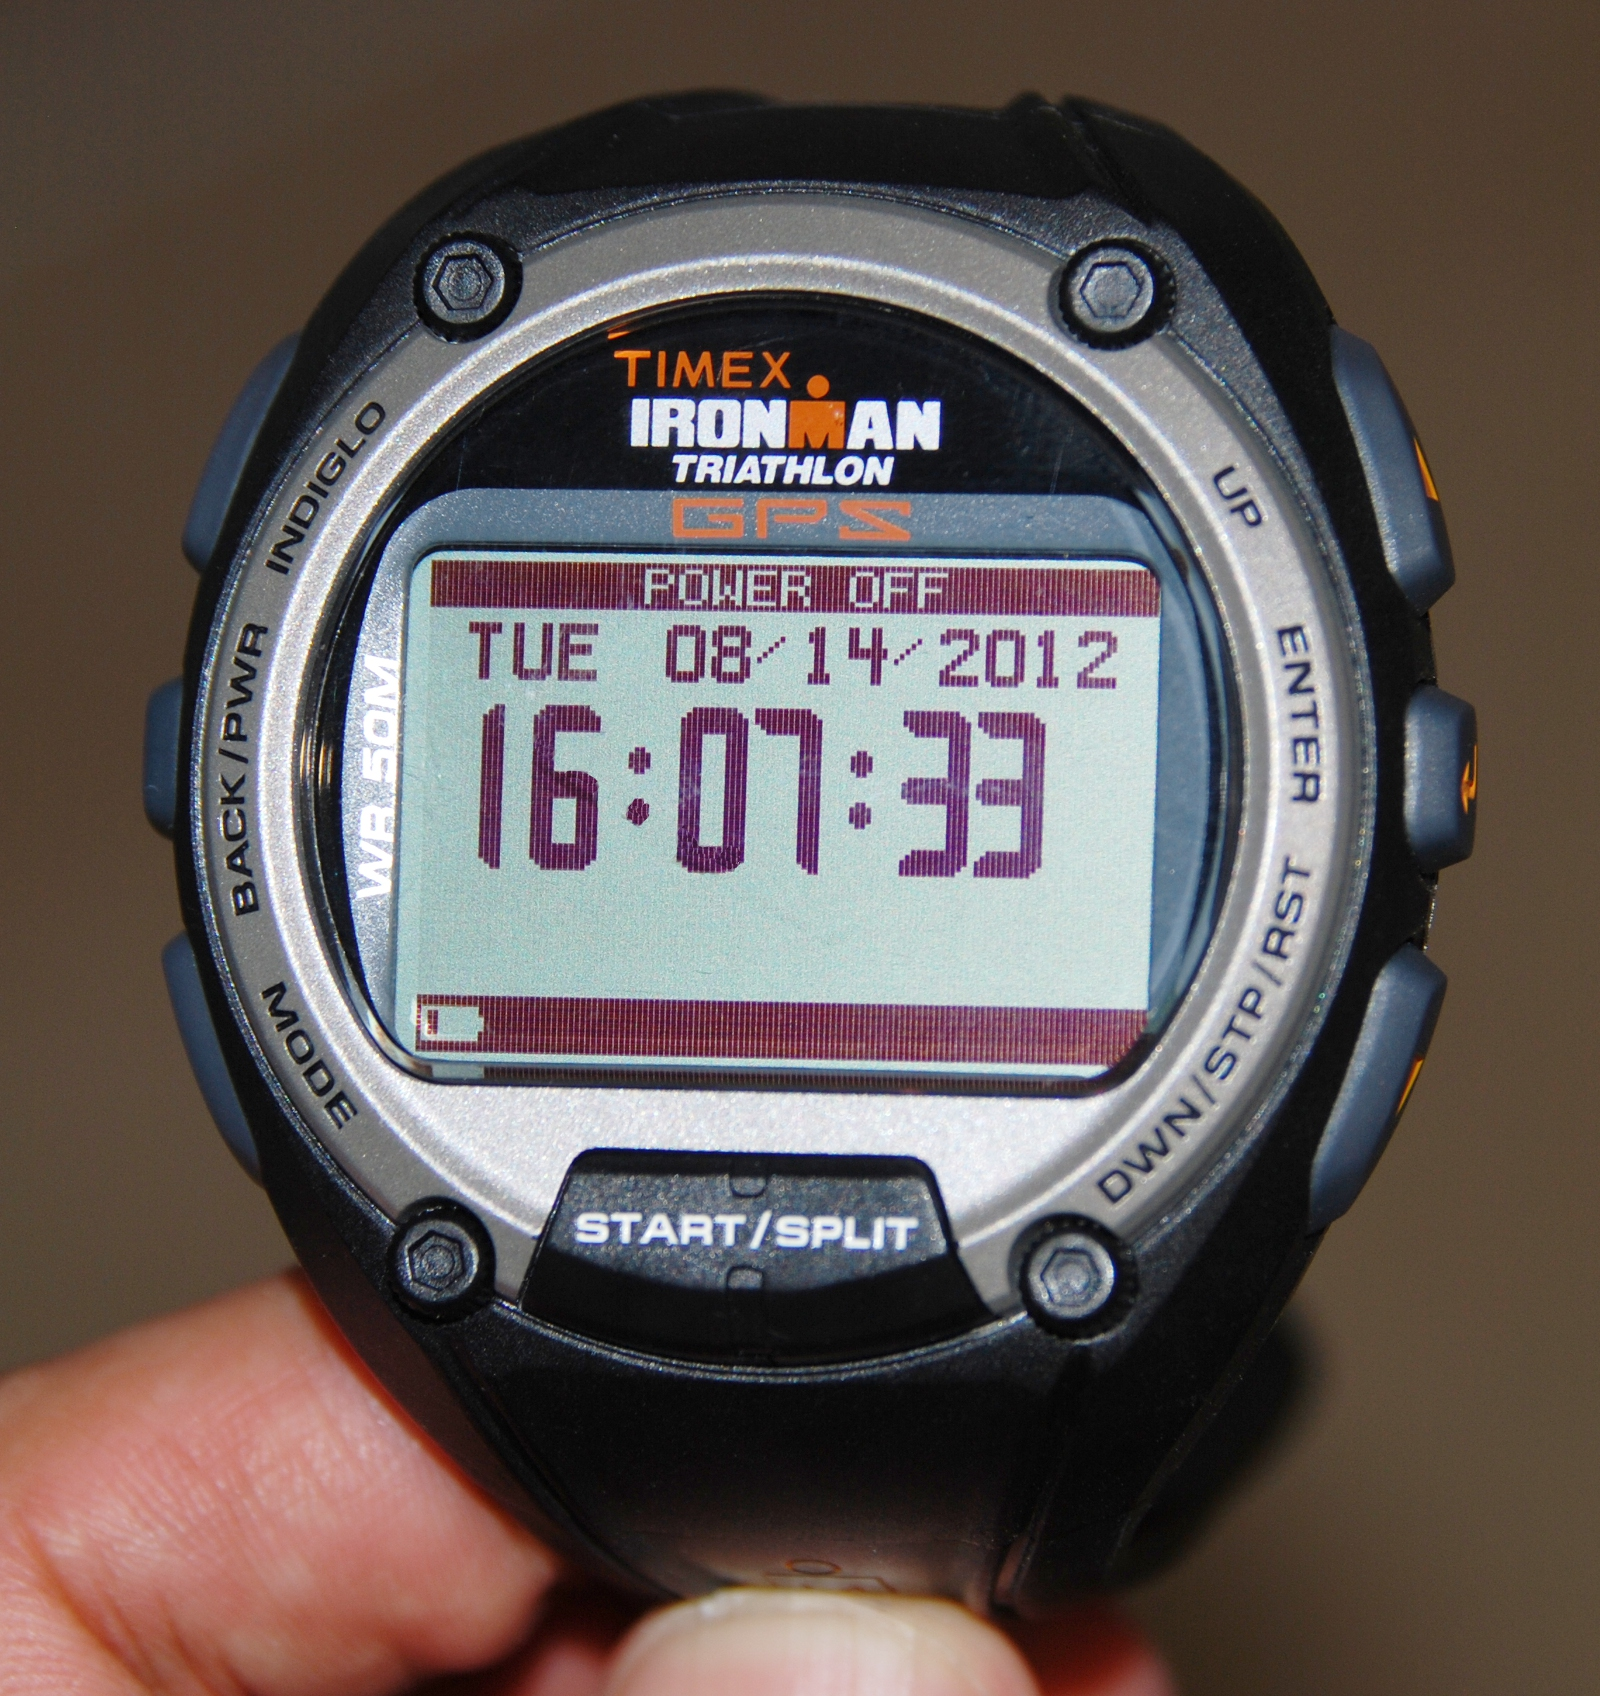 The face of the Timex Ironman GPS Global Trainer